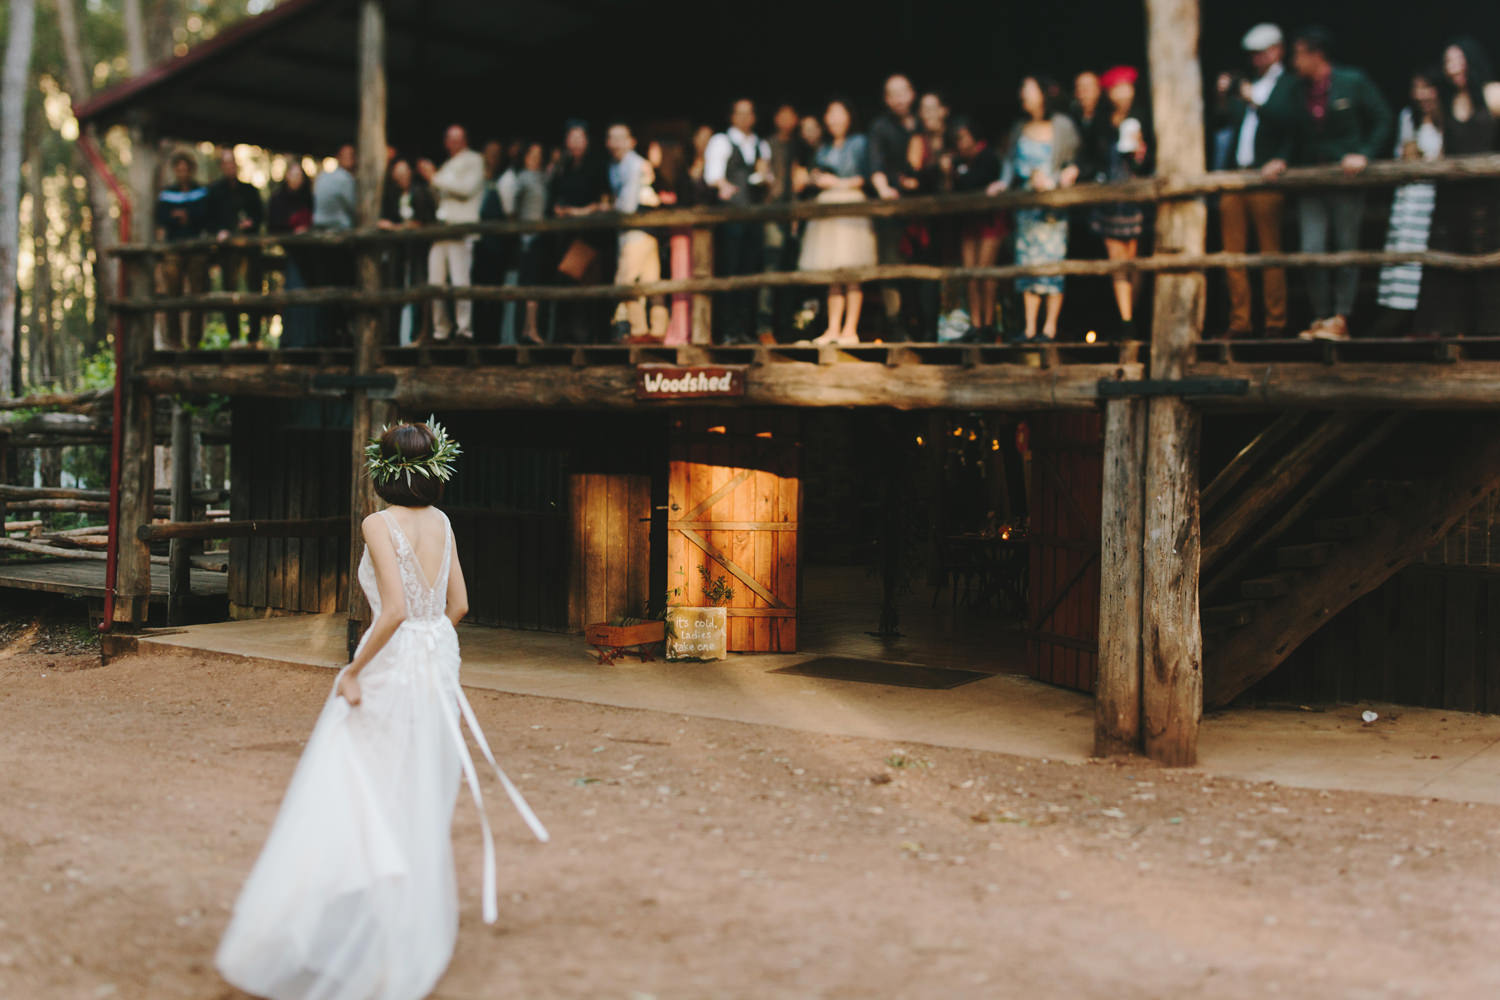 154-Barn_Wedding_Australia_Sam_Ting.jpg